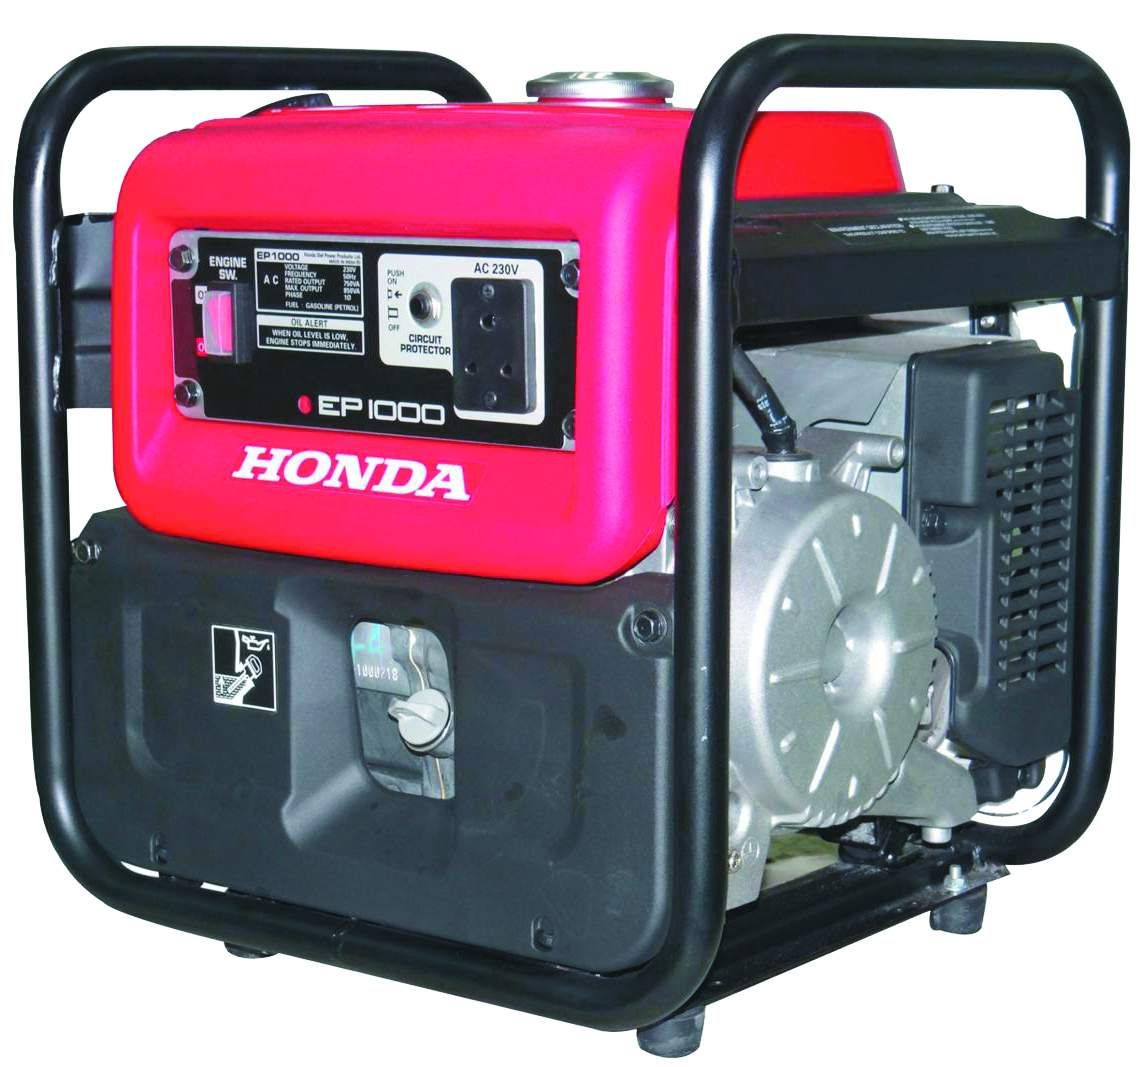 EP1000 Honda Portable Power Generator Portable power